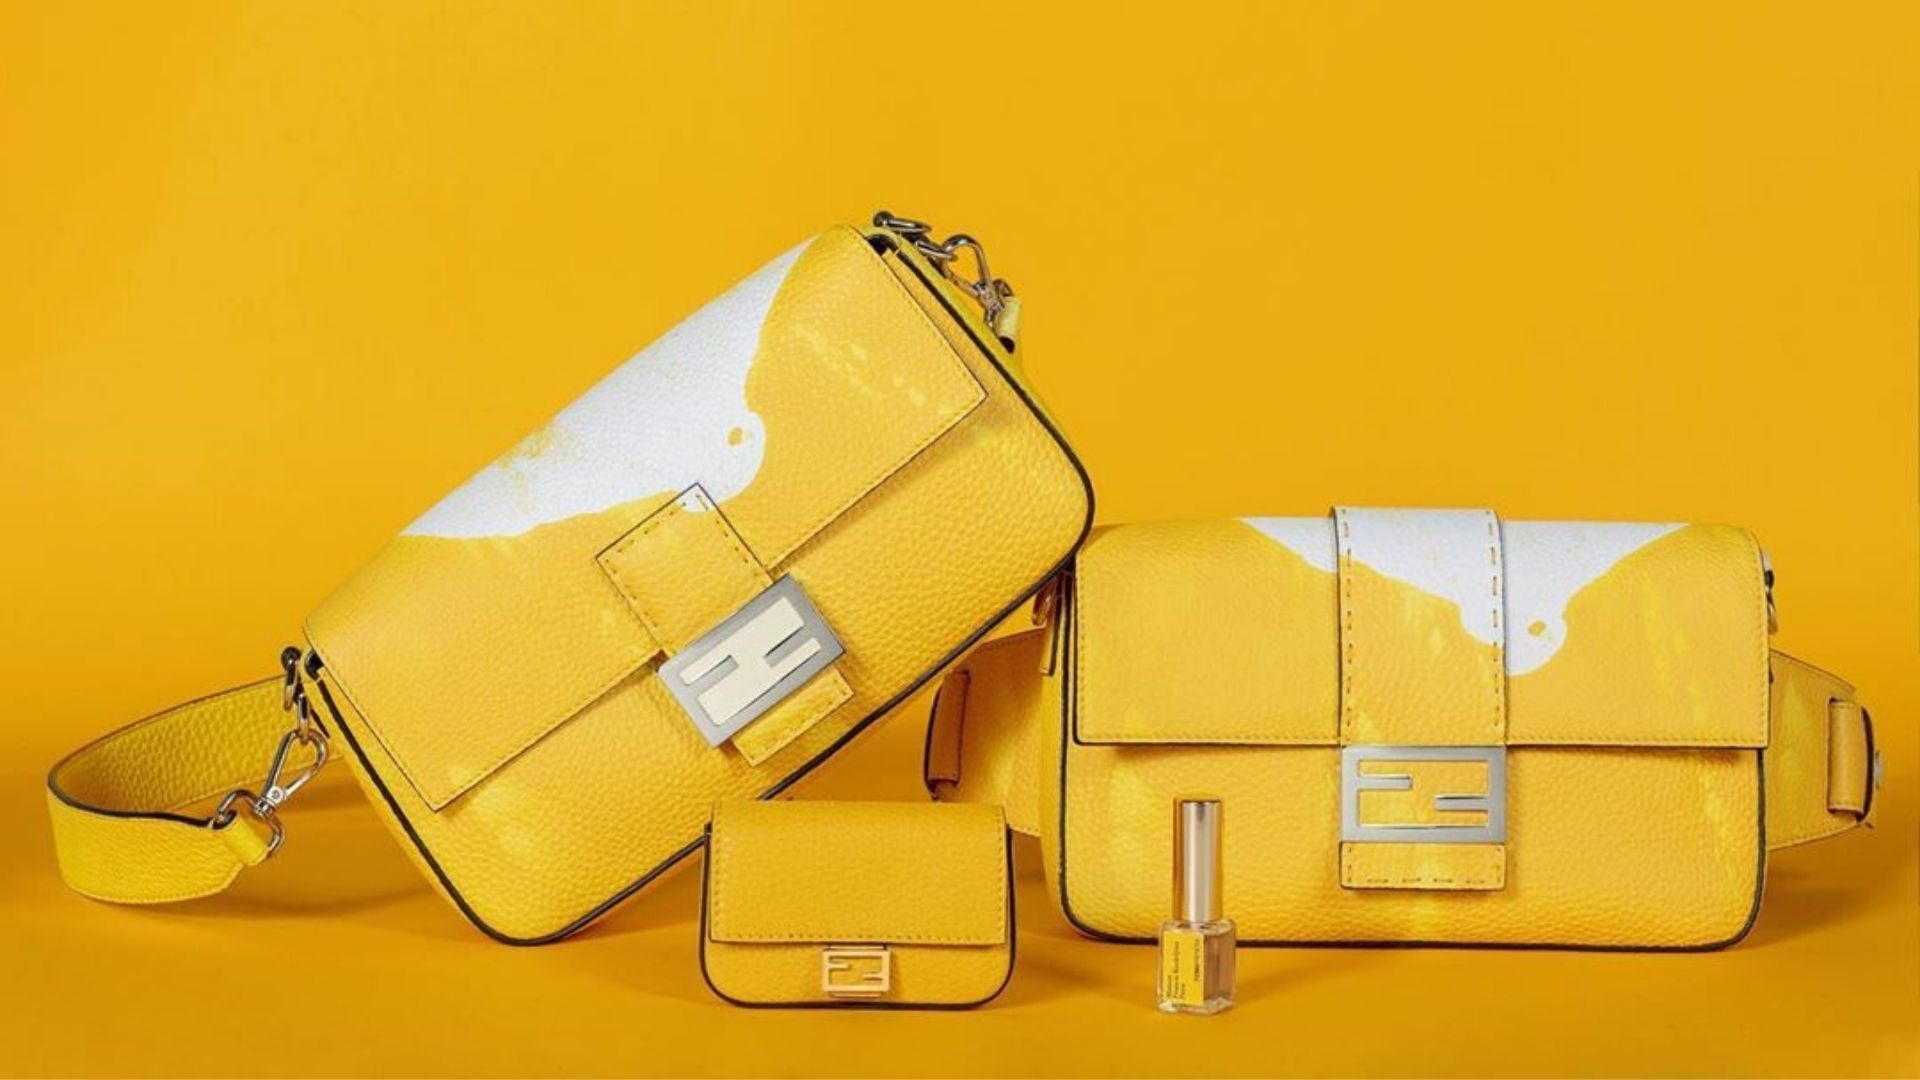 Fendi Unveils The World's First Fragrance-Infused Handbags